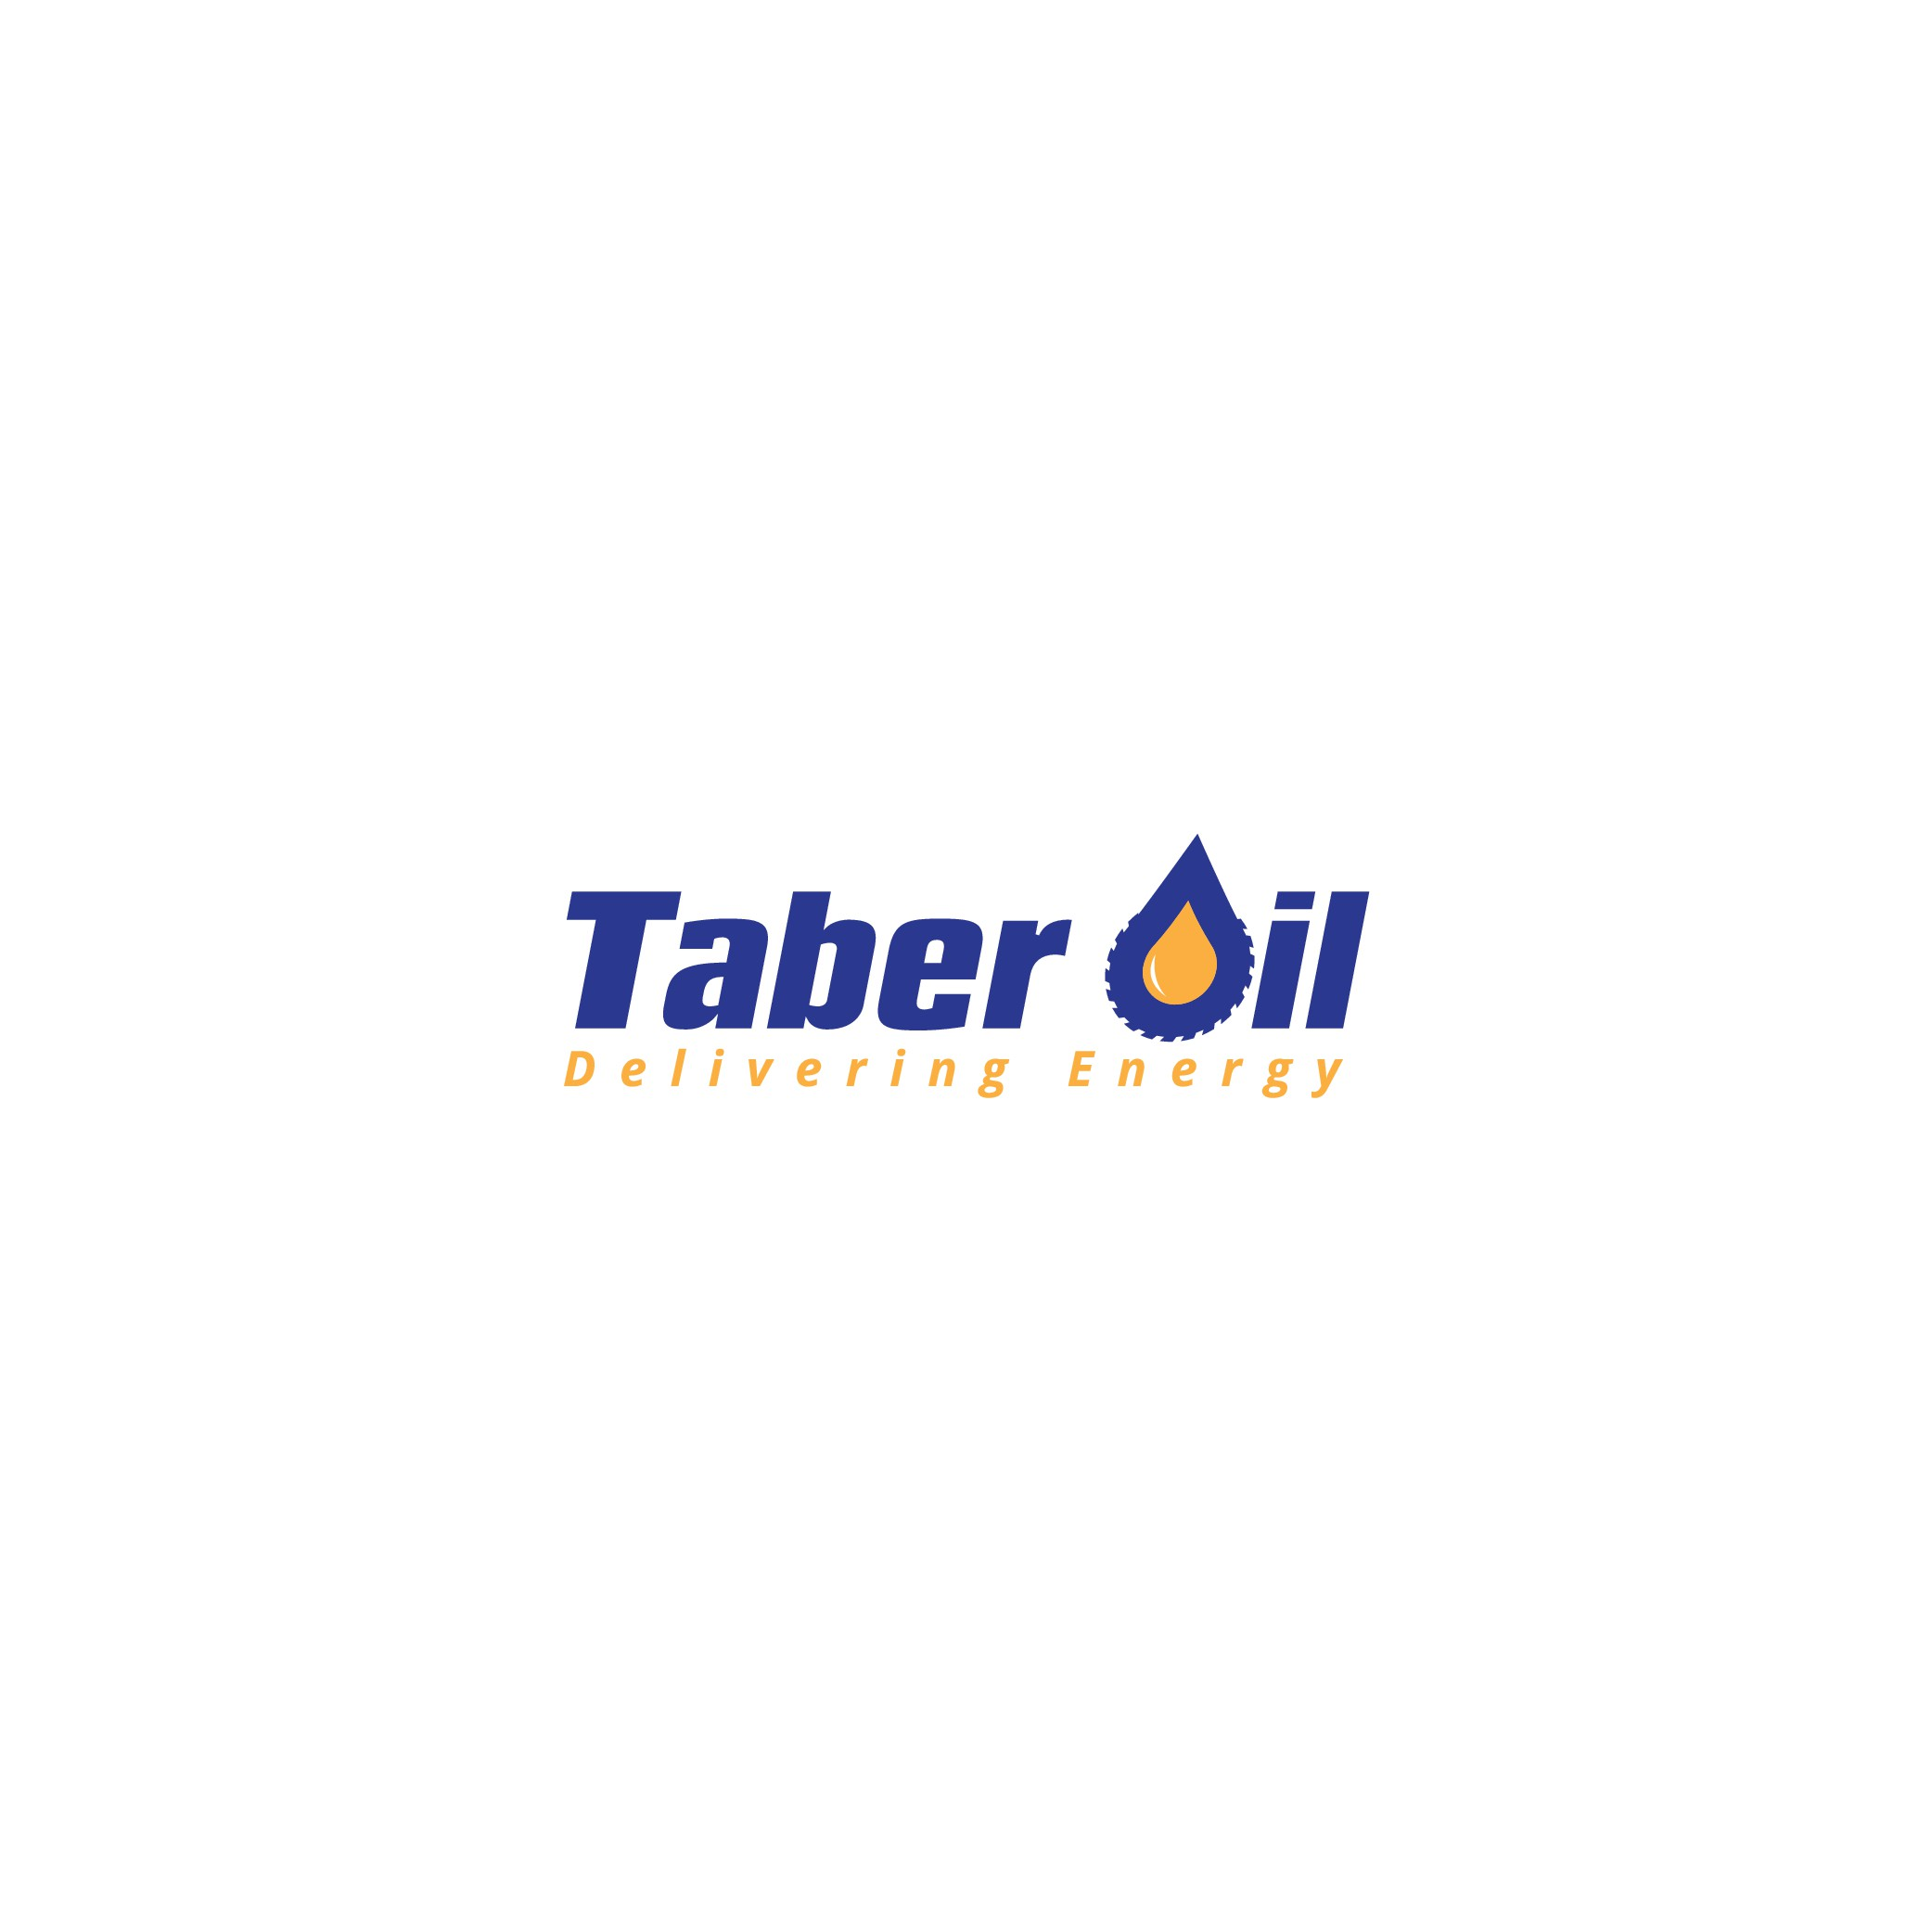 Oil Company would like a typography logo but would take a professional logo open to anything